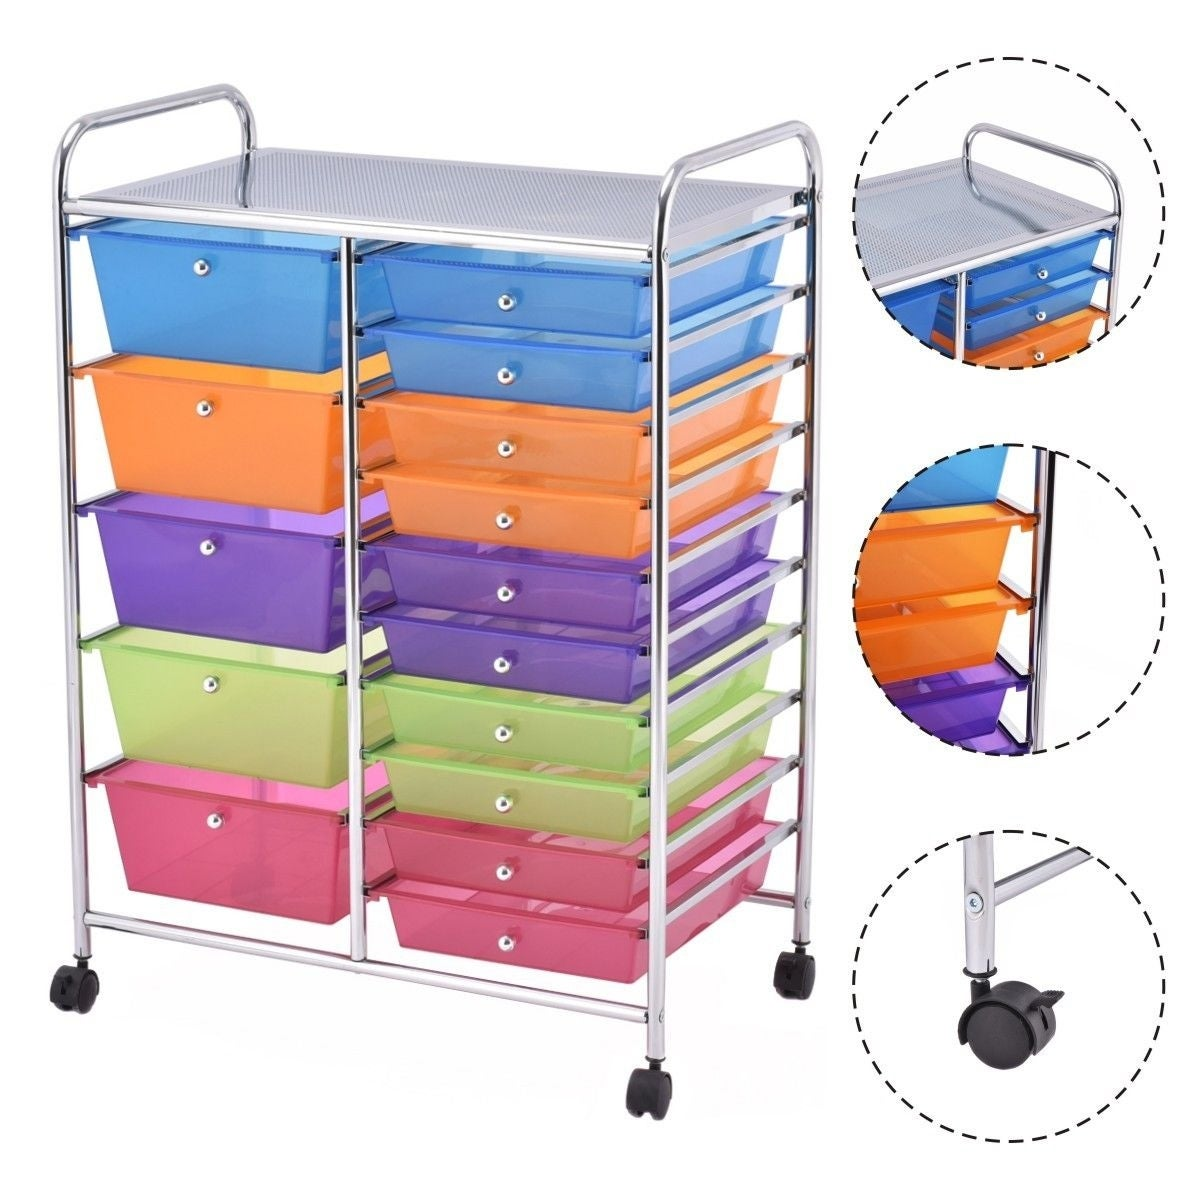 Shop Gymax Rolling Storage Cart 15 Drawers Organize Shelf Office School    On Sale   Free Shipping Today   Overstock.com   22888563